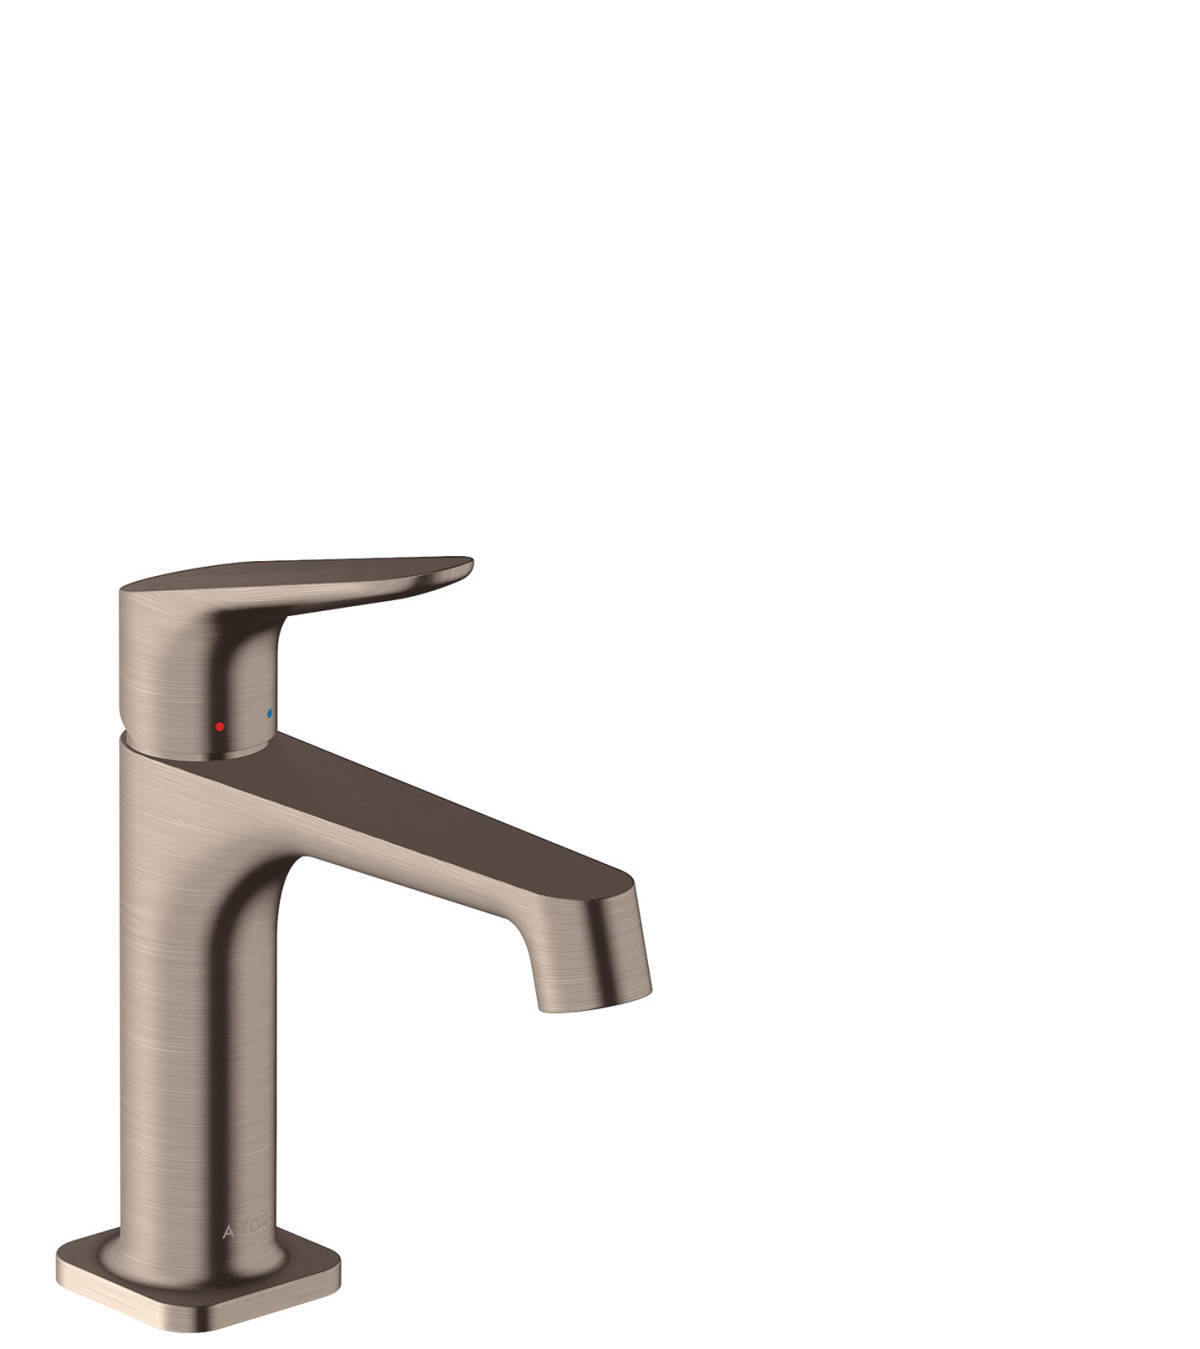 Single lever basin mixer 100 with pop-up waste set, Brushed Nickel, 34010820